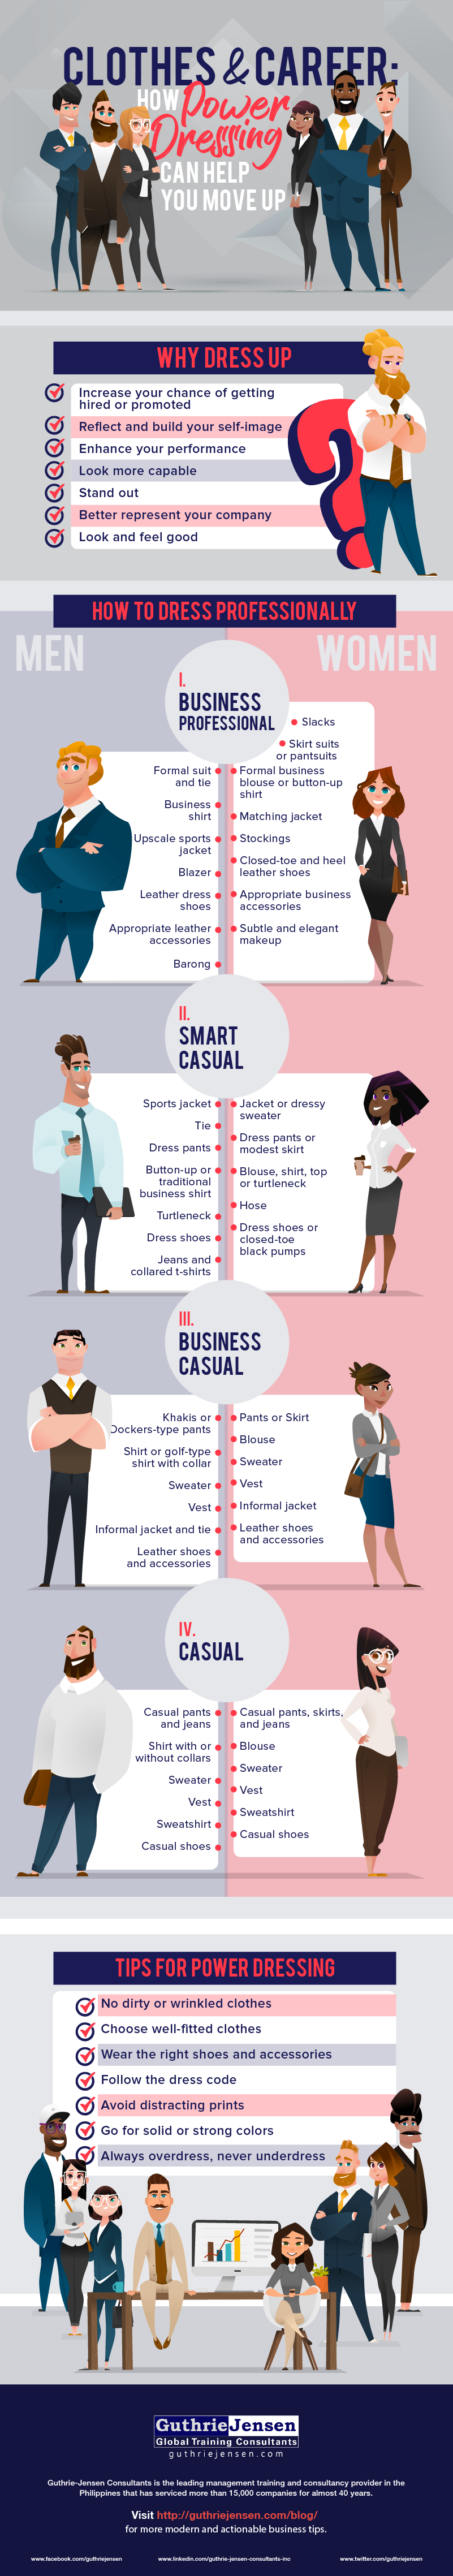 Infographic - Clothes and Career by Guthrie Jensen